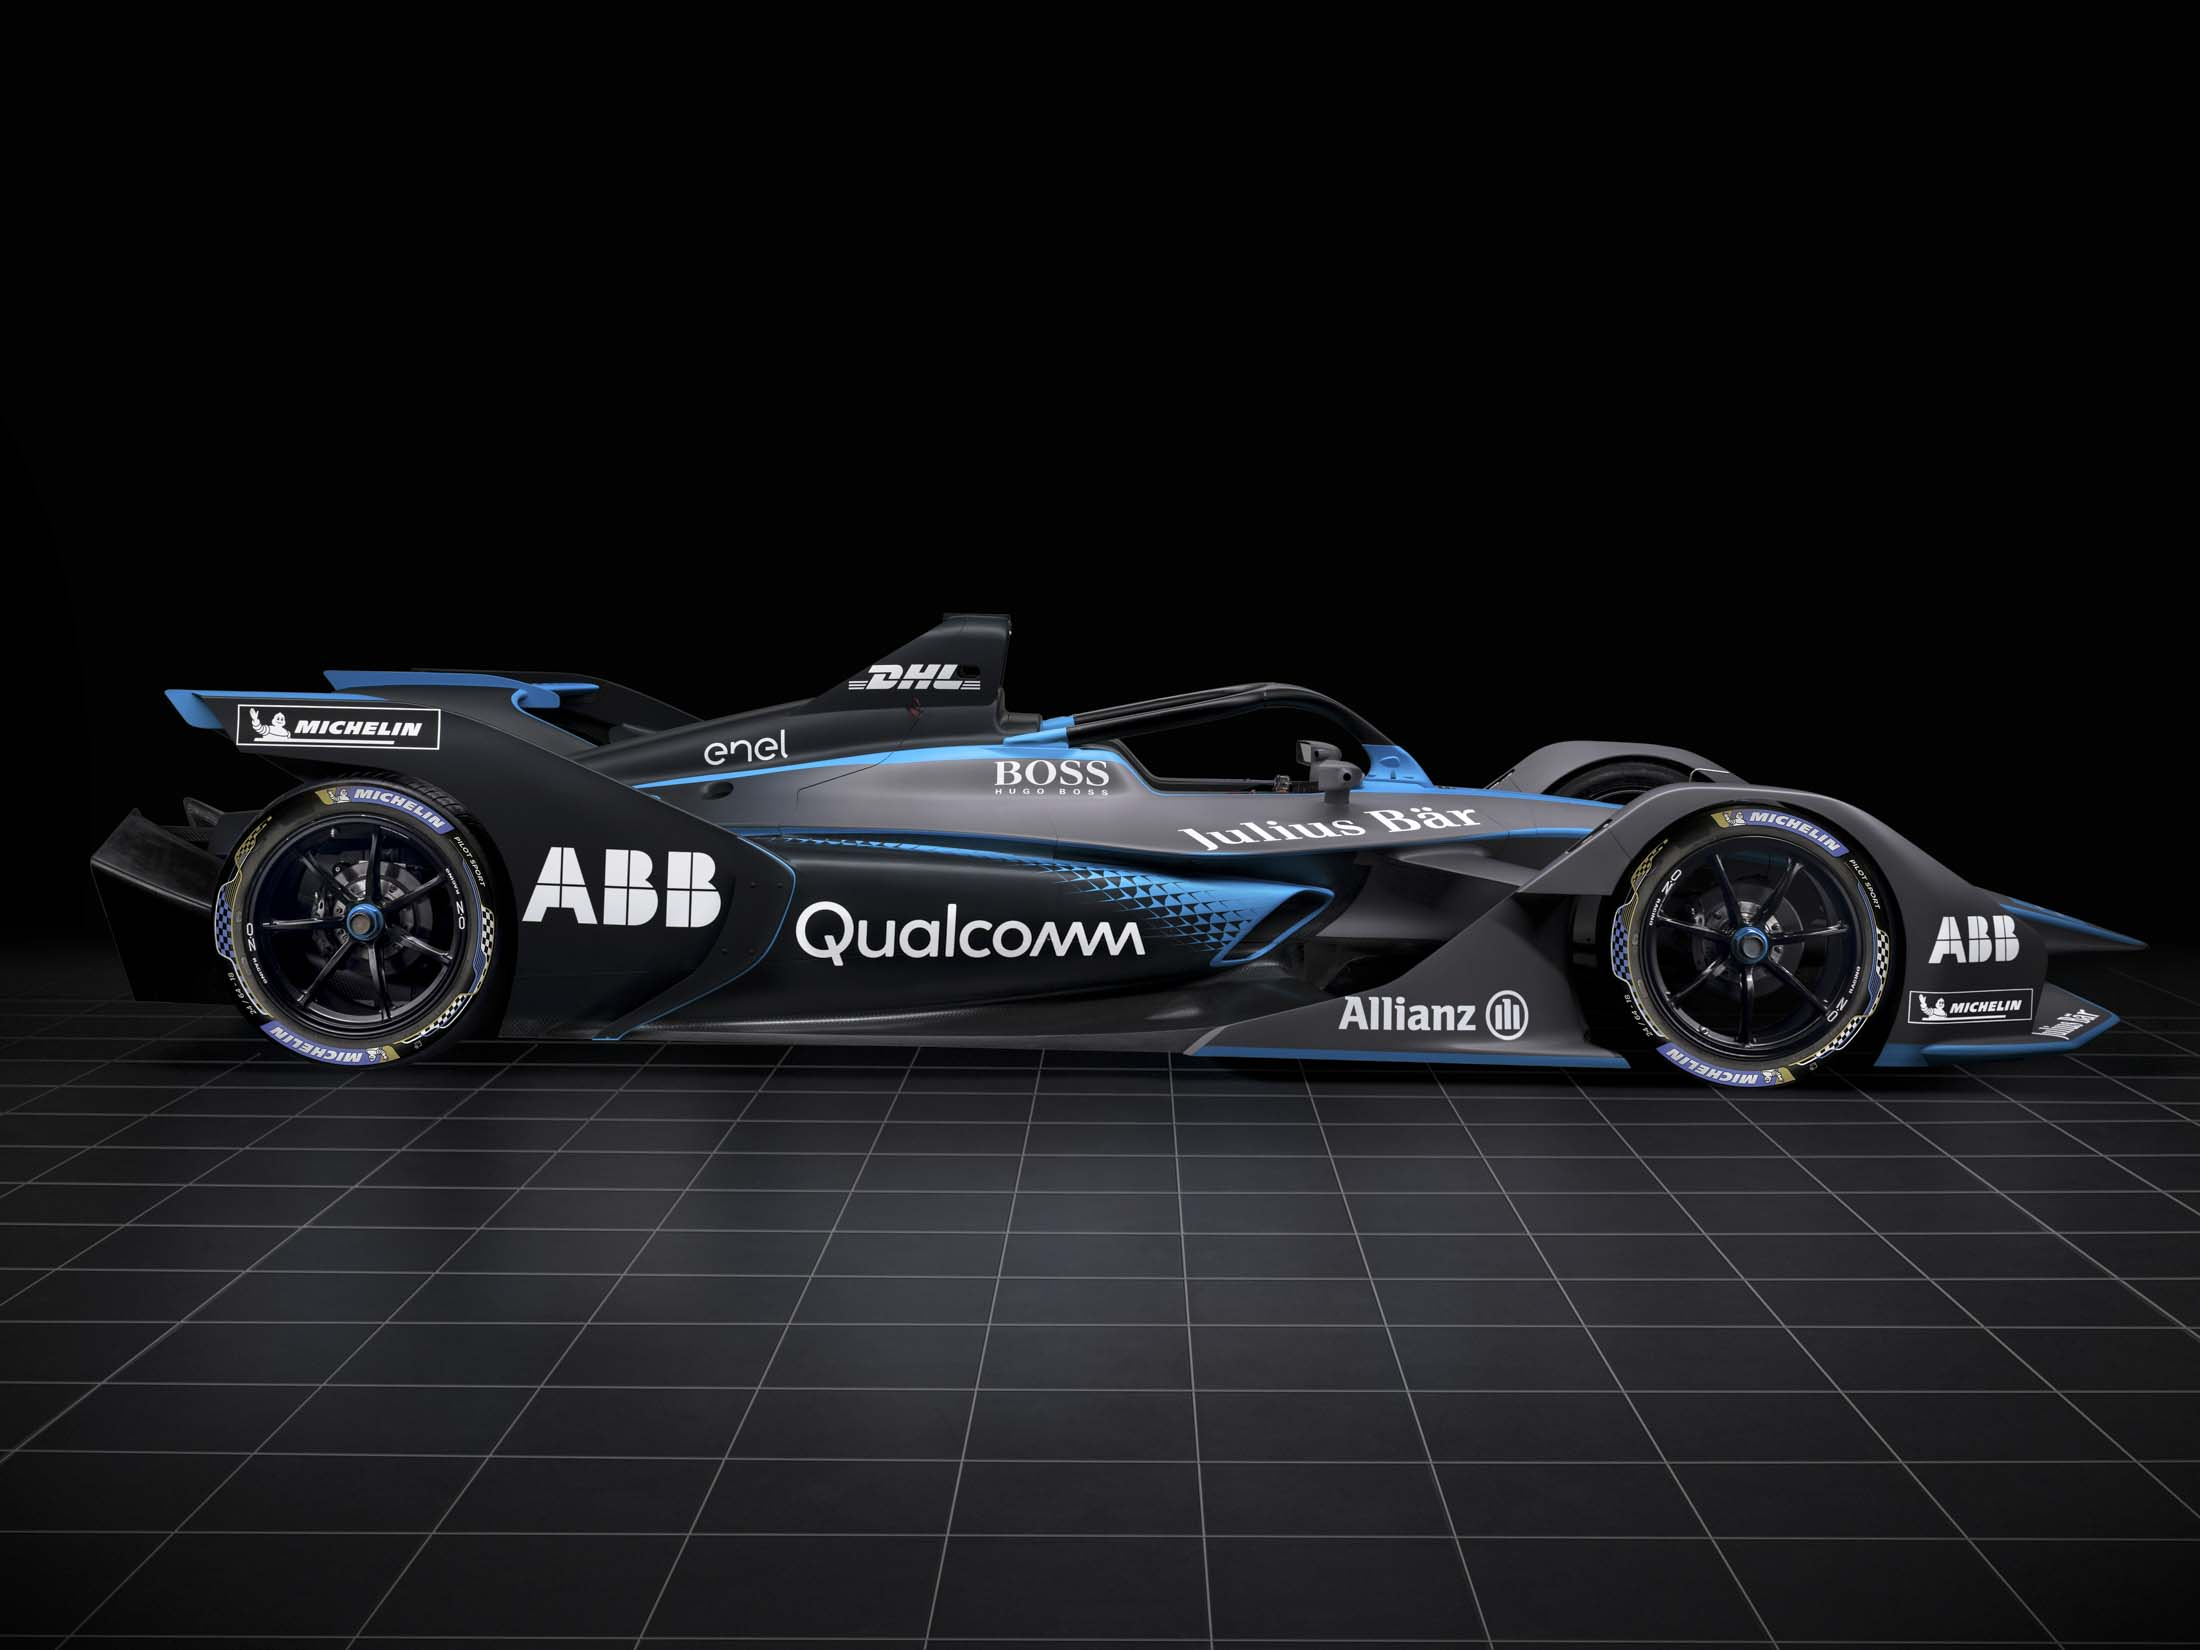 Take A Peek At The Insane Formula E Racecar That Launches In 2019 Automotivepictures 4163321997sc1alternatorwirediagram1jpg Bloomberg